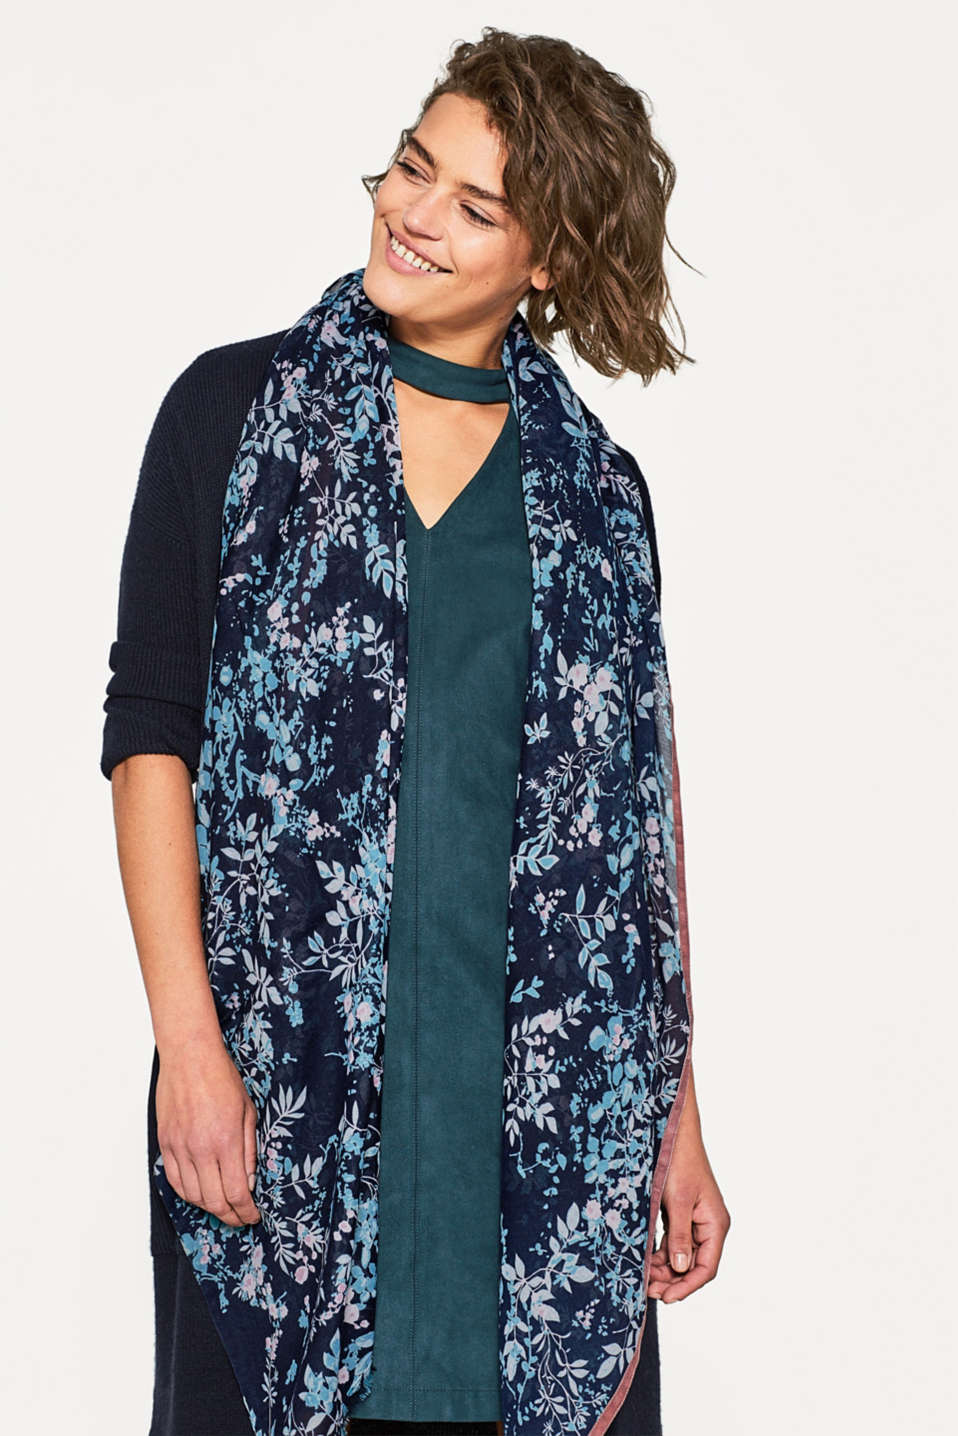 Woven scarf with a floral pattern